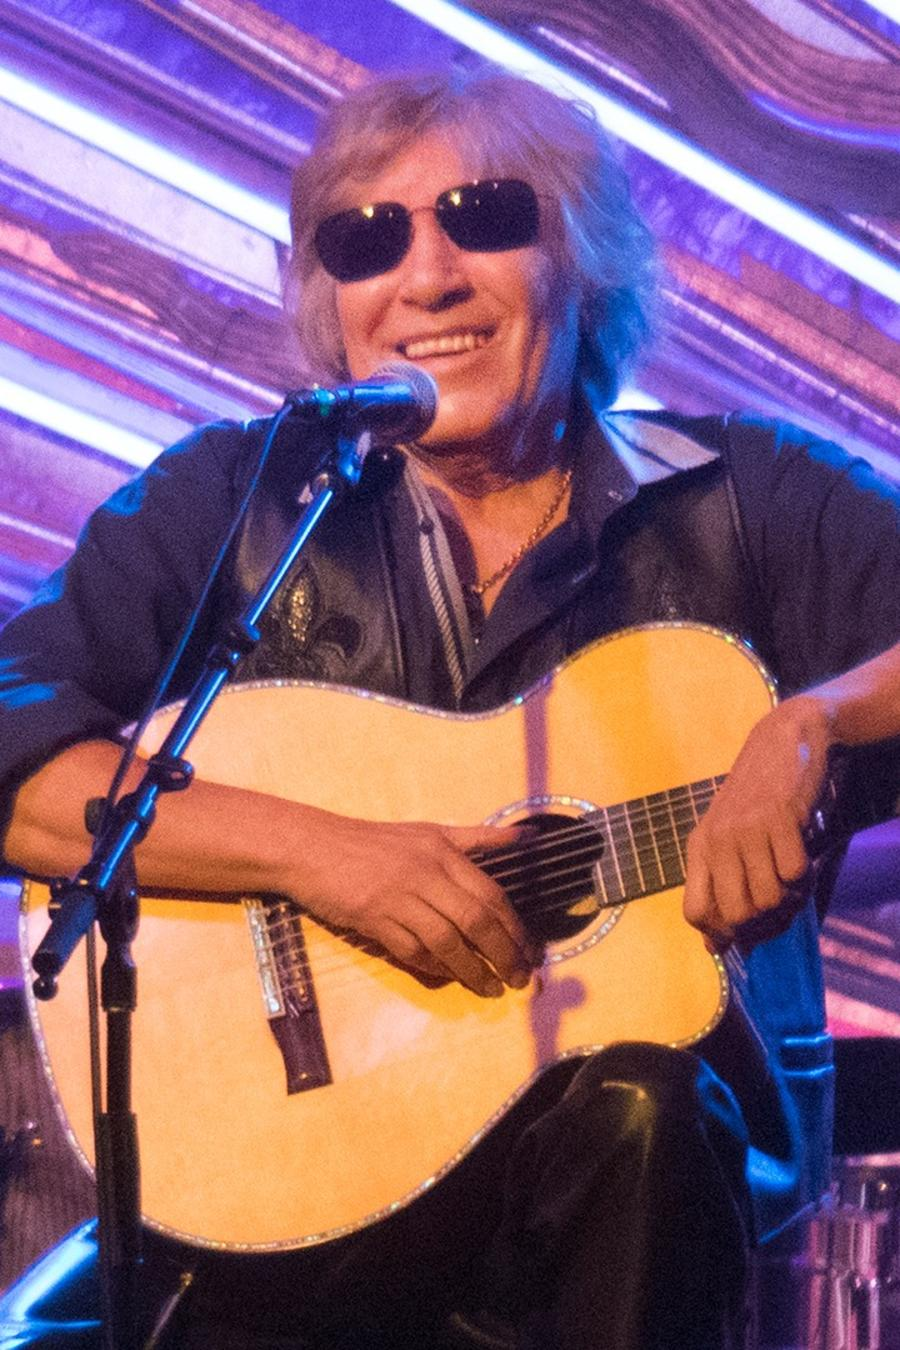 Jose Feliciano playing guitar in concert